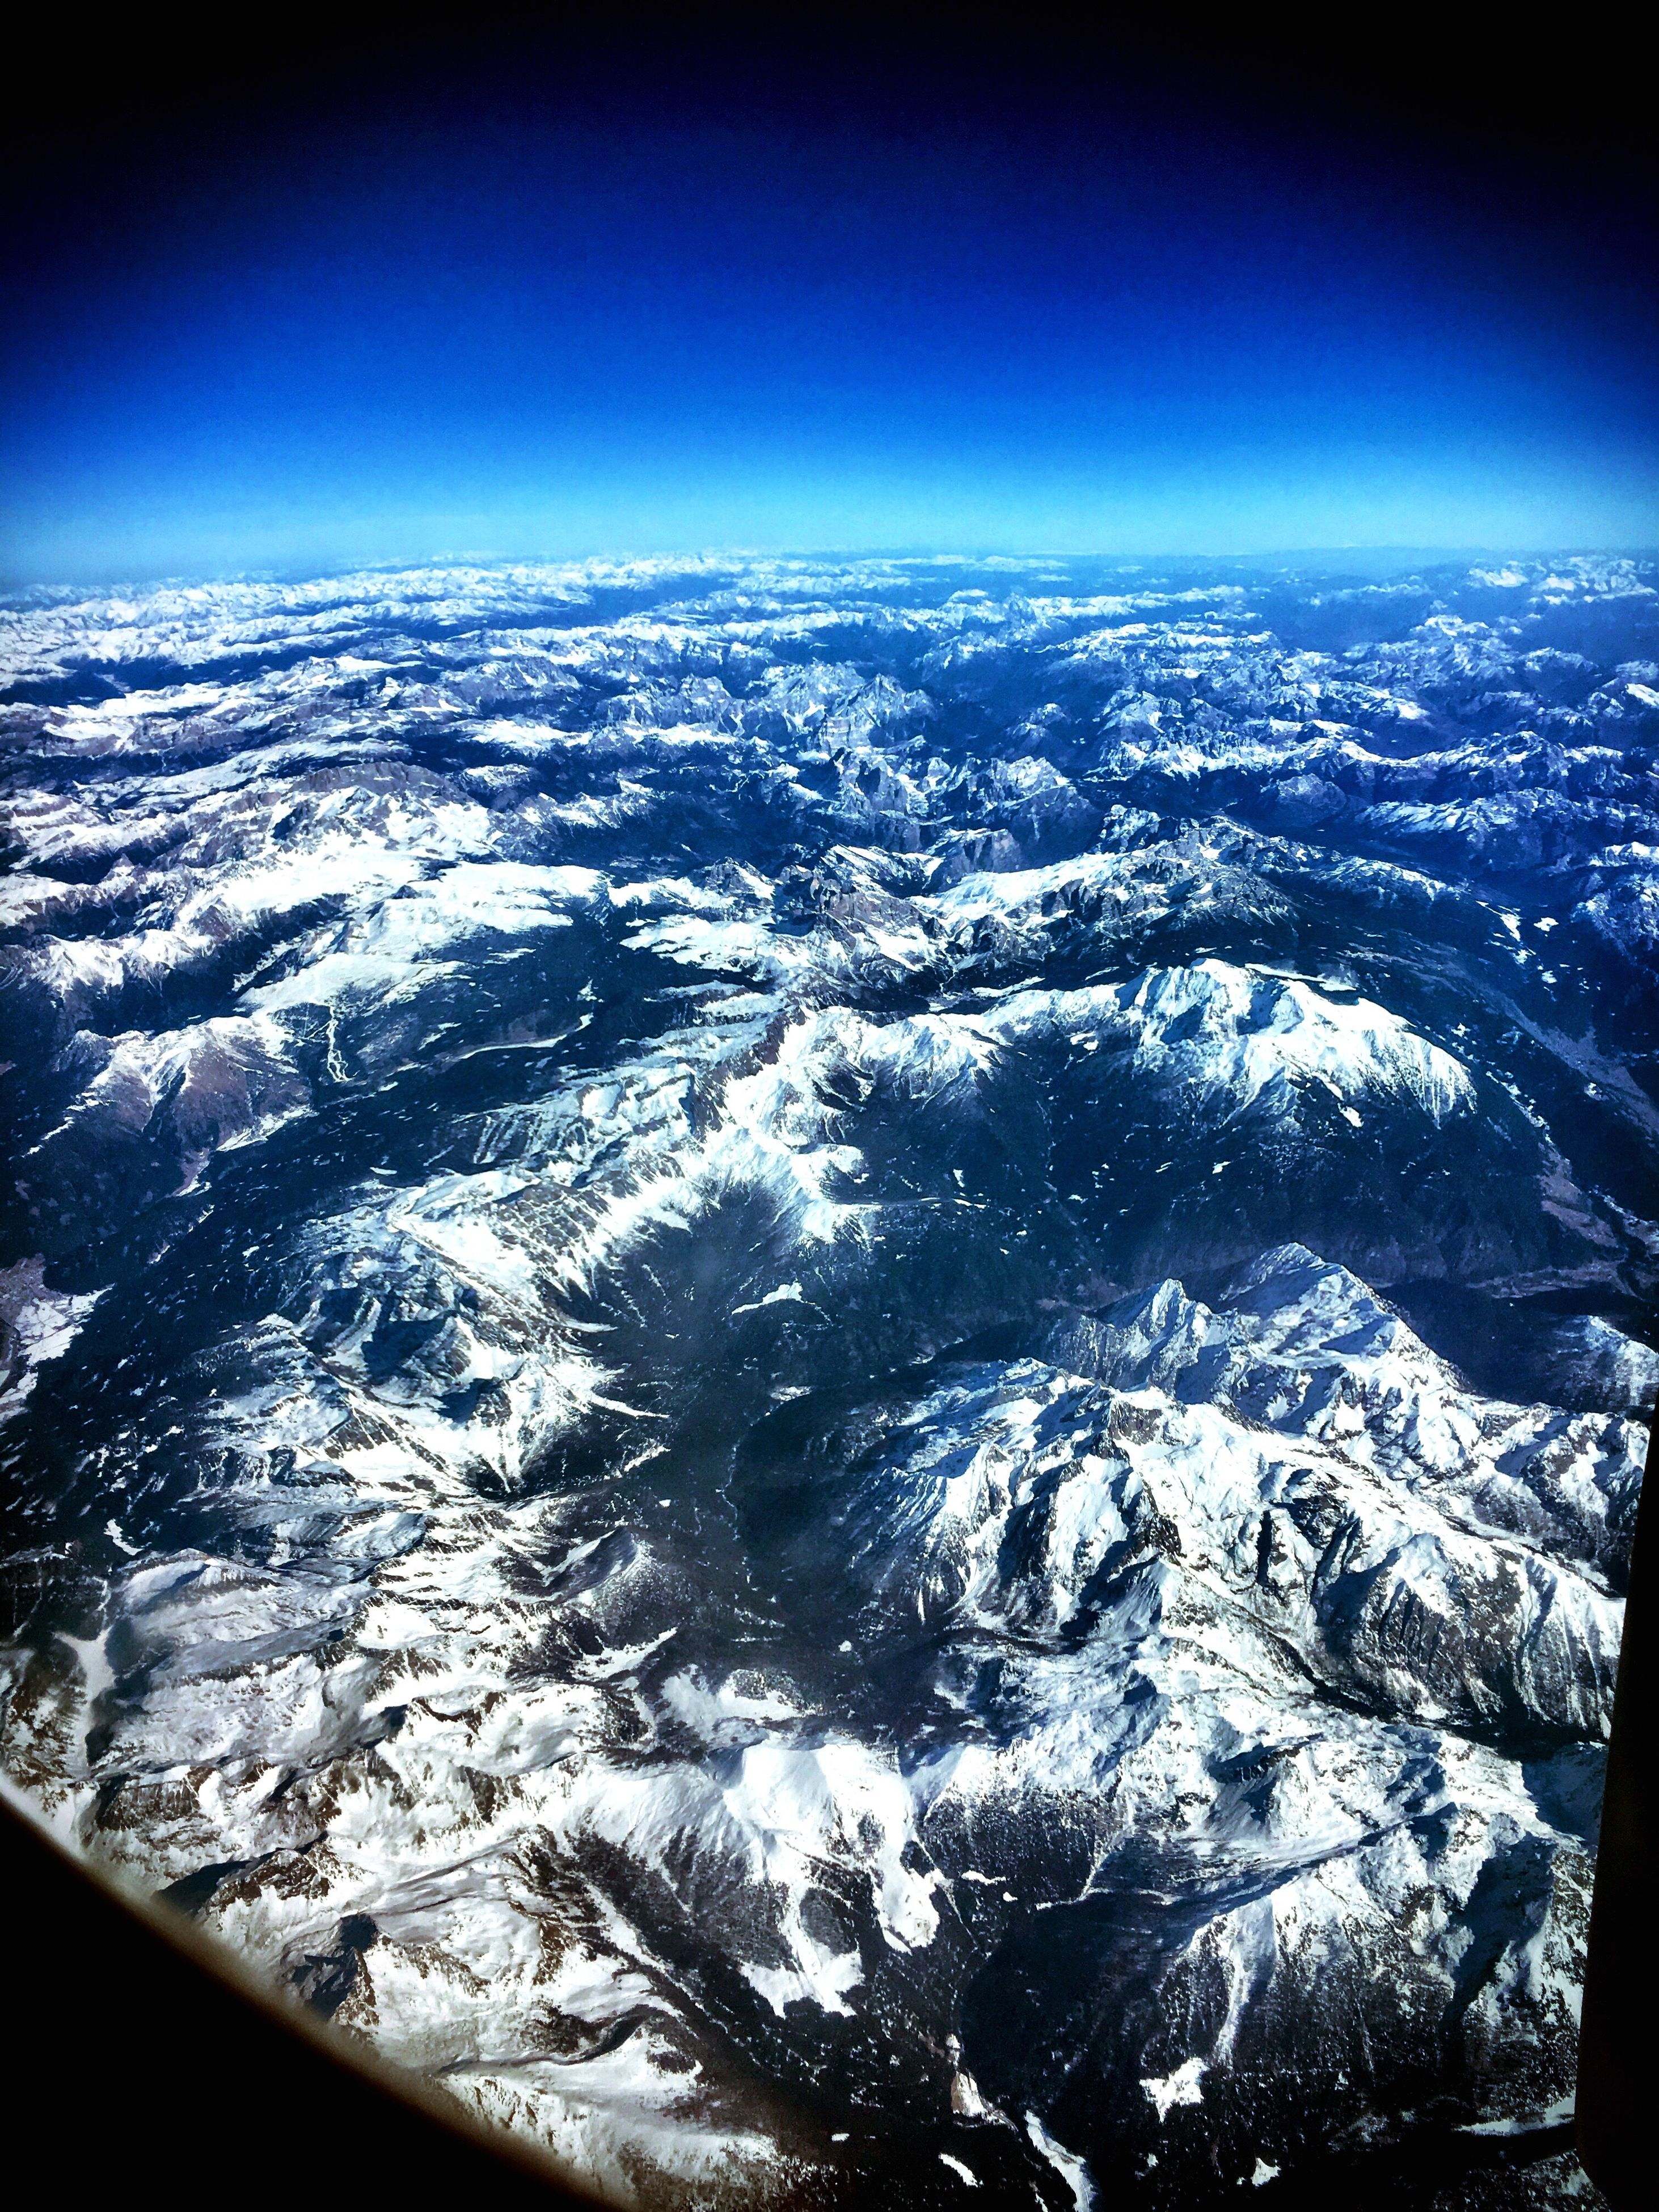 nature, aerial view, scenics, beauty in nature, blue, tranquil scene, non-urban scene, landscape, tranquility, no people, extreme terrain, airplane, backgrounds, outdoors, mountain, sky, day, close-up